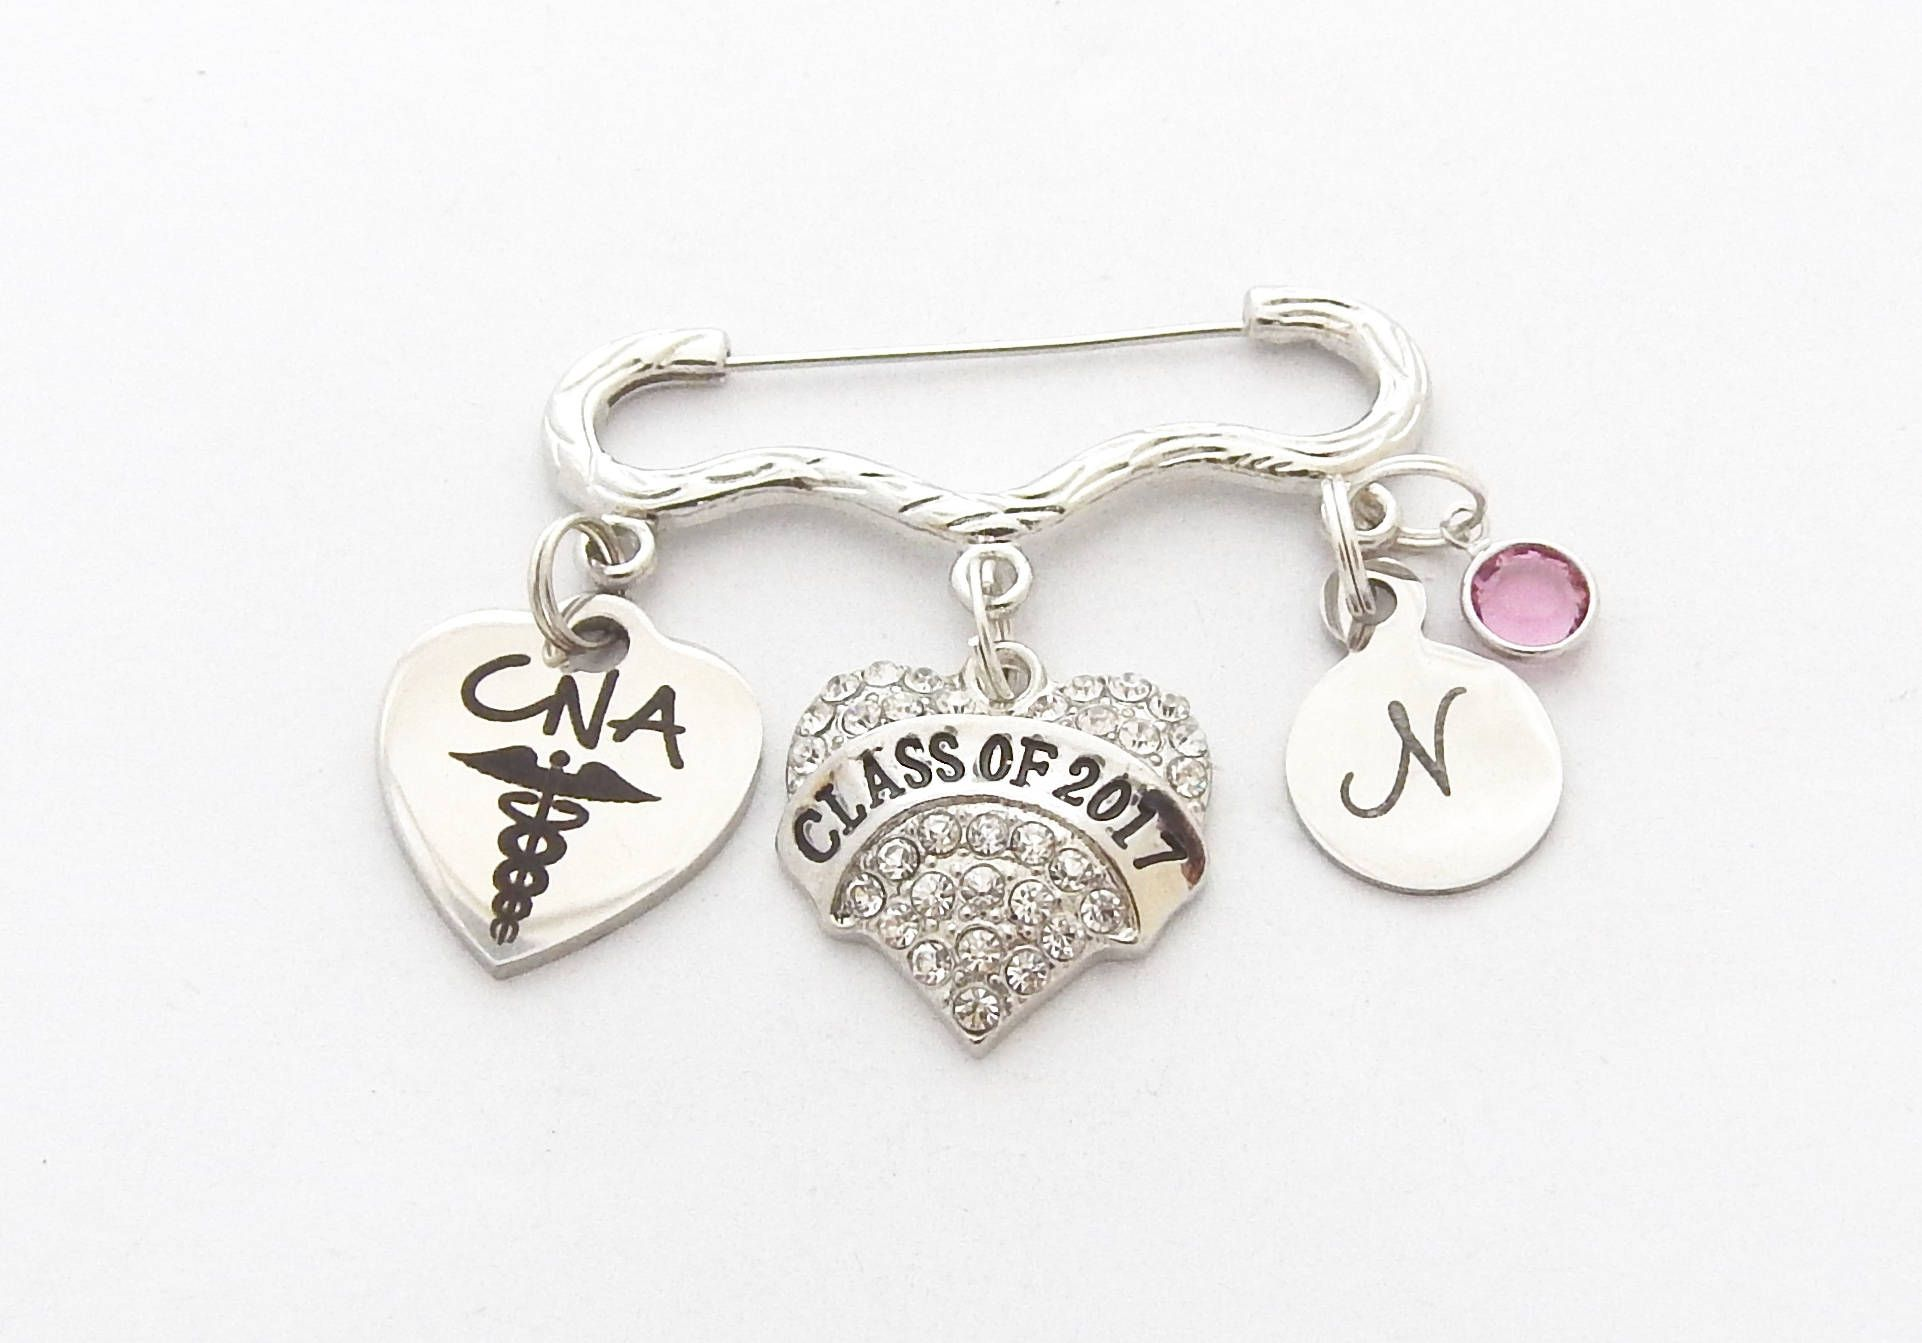 Nurse Pinning Gift She Believed She Could So She Did Nurse Pin Nurse Graduation Pinning Gift Nurse Pinning Ceremony Pin